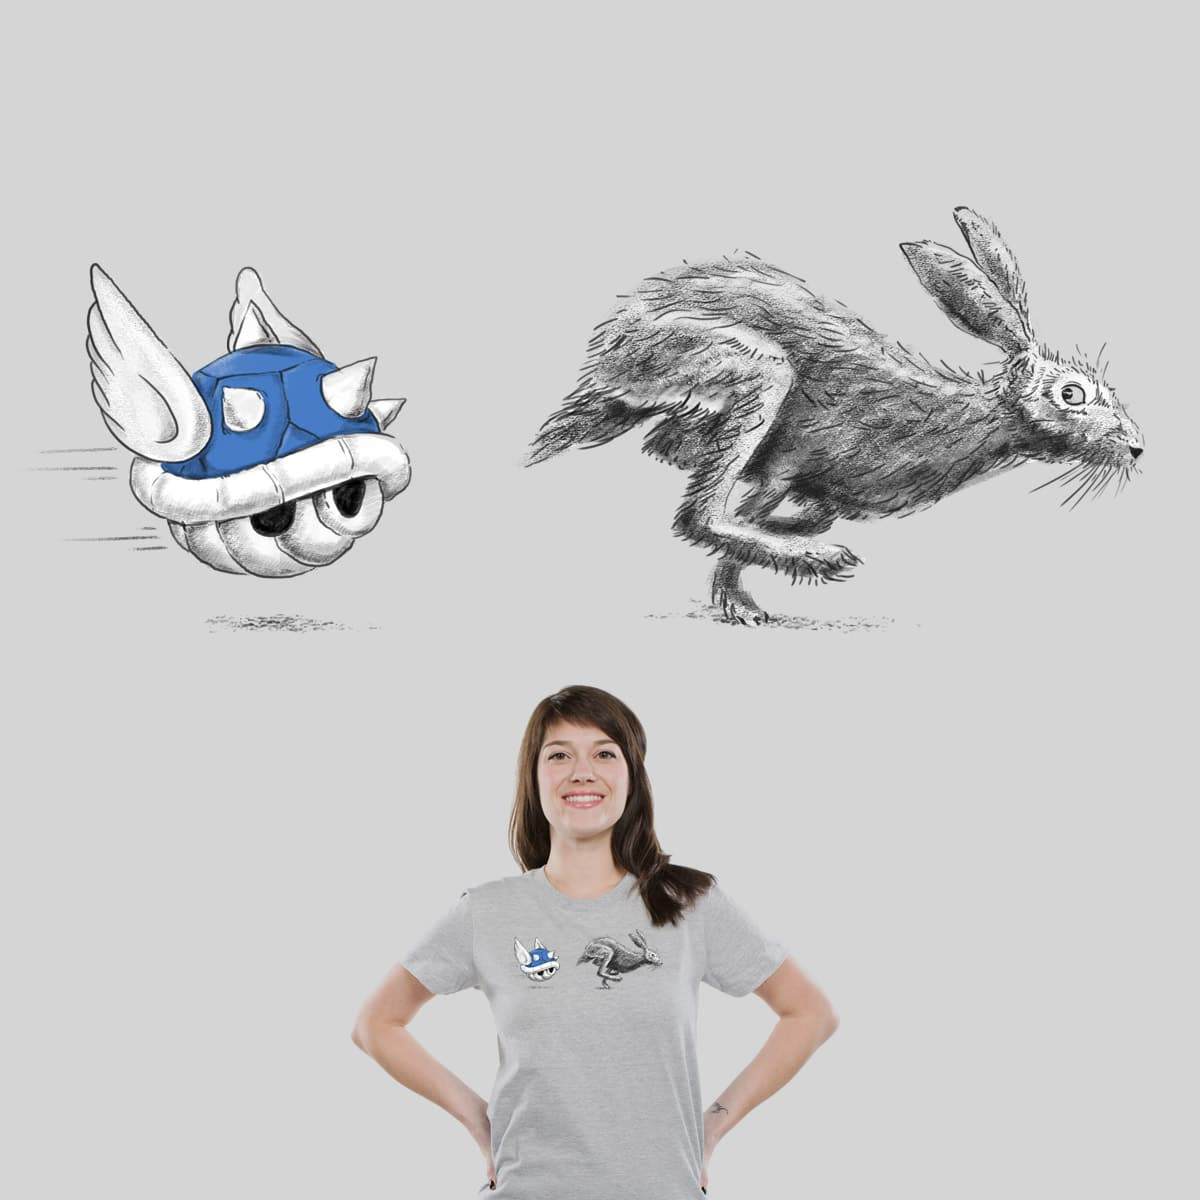 Follow the leader by ppmid on Threadless